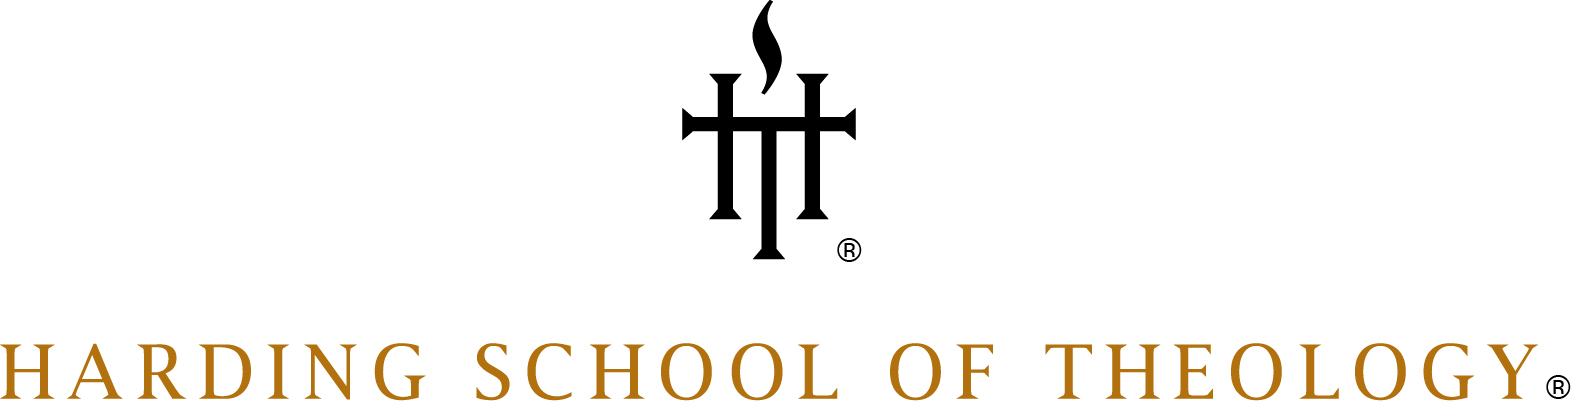 Harding School of Theology